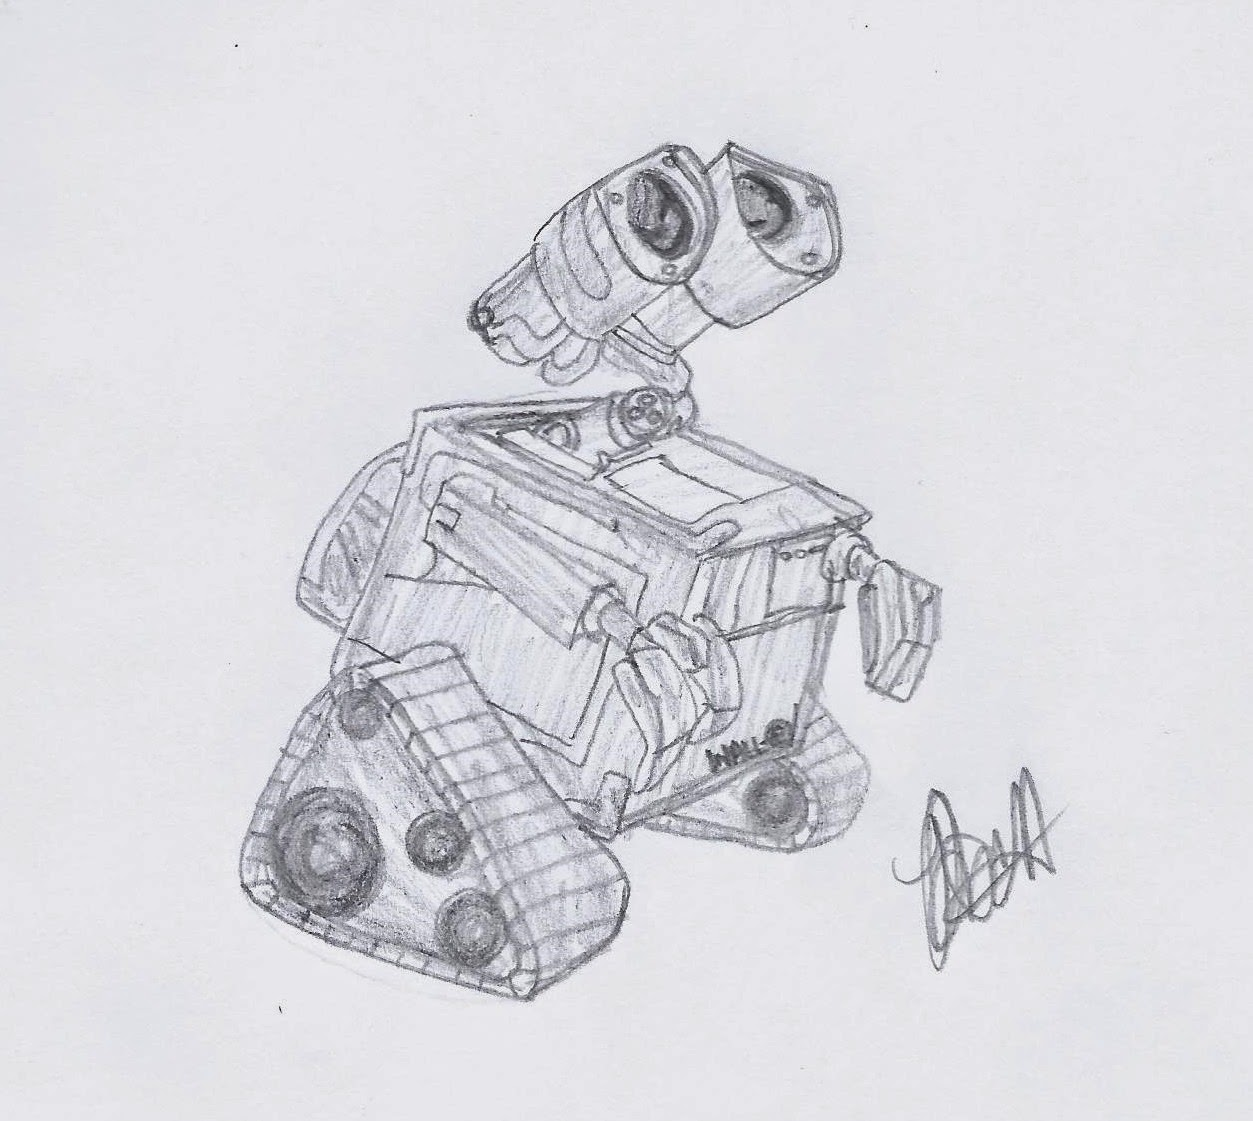 Disney Illustration Study: Wall-e, www.JoLinsdell.com